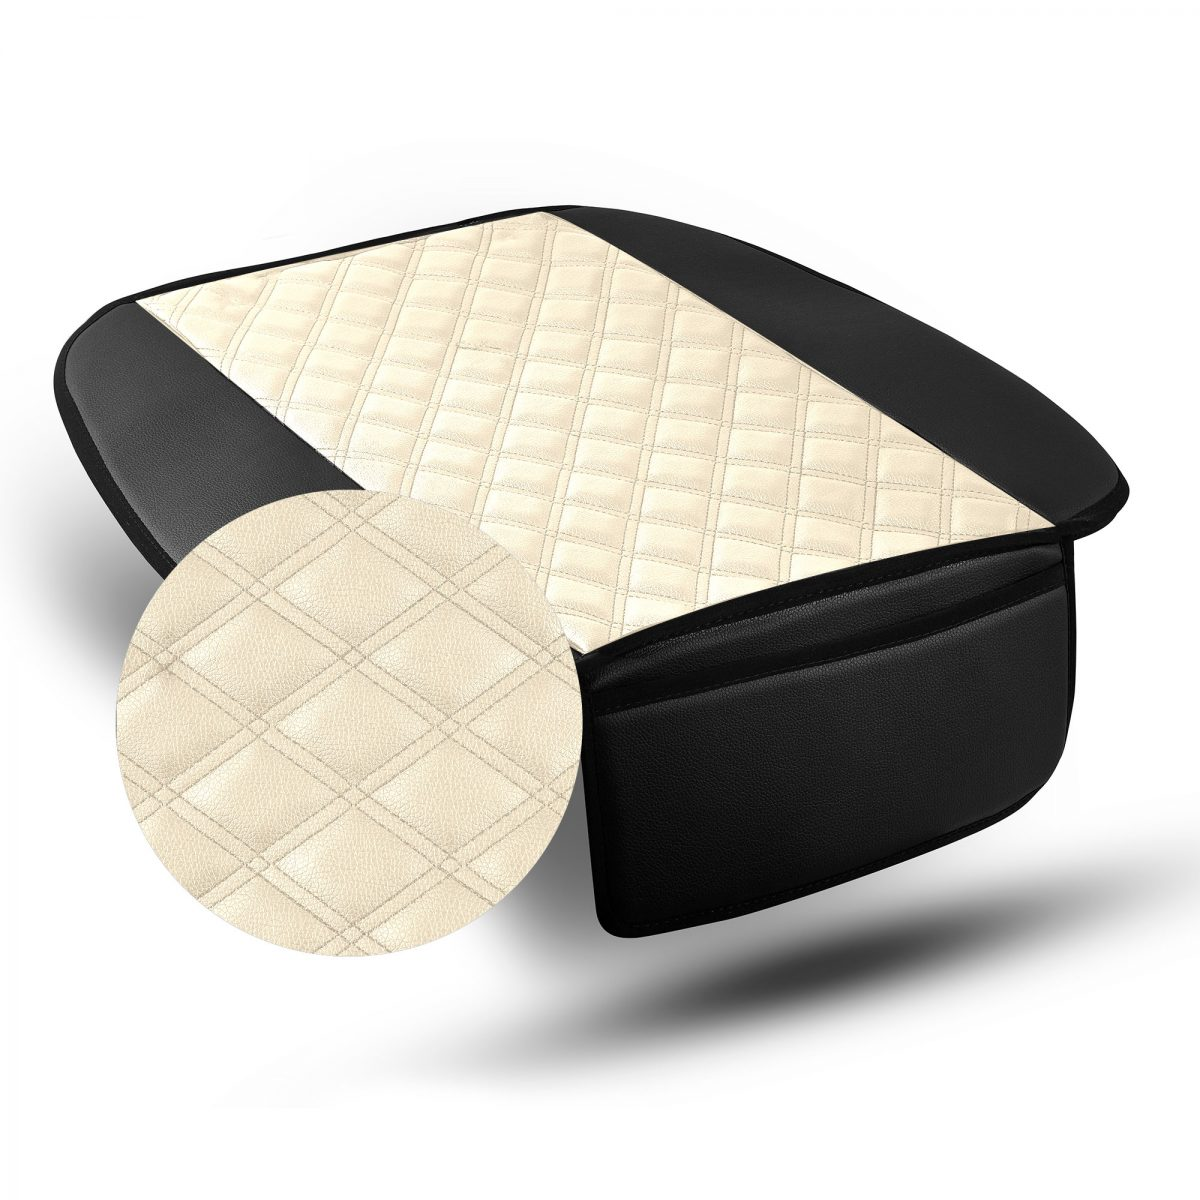 Faux Leather Seat Cushion Pad with Front Pocket material